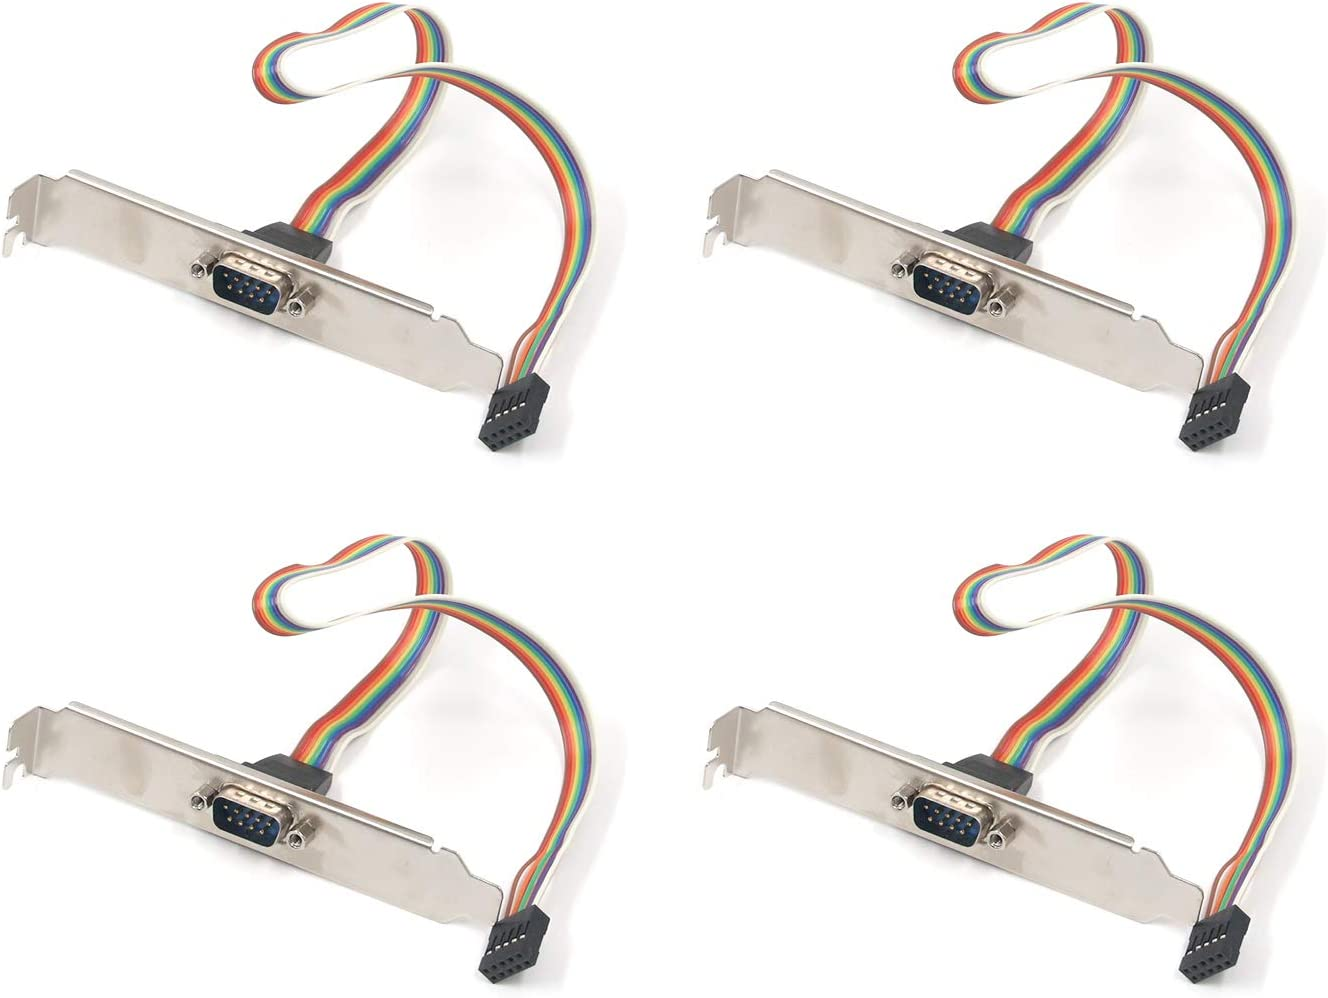 DB9 Serial Male to 10 Pin 2.54mm Female Dupont Jumper Wires Connector Slot Plate Panel Mount Rainbow RS232 Serial Adapter Cable w//Bracket 4Pcs 30cm Antrader 12in